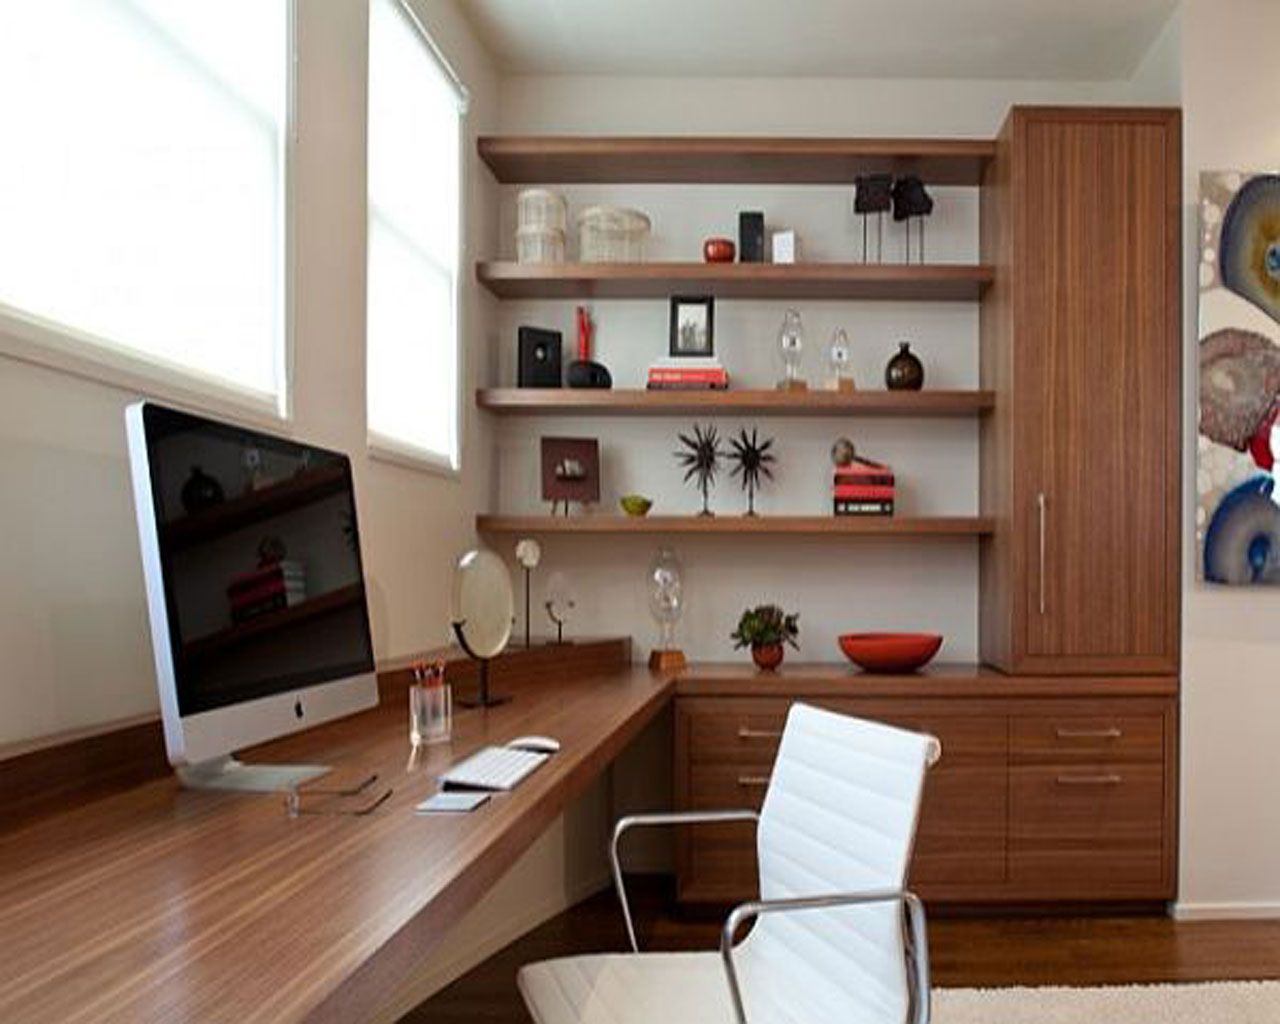 Do you want to fit a small  HomeOffice into your small home  It can. Fit a Small Office in Your Small Home   Office designs  Modern and